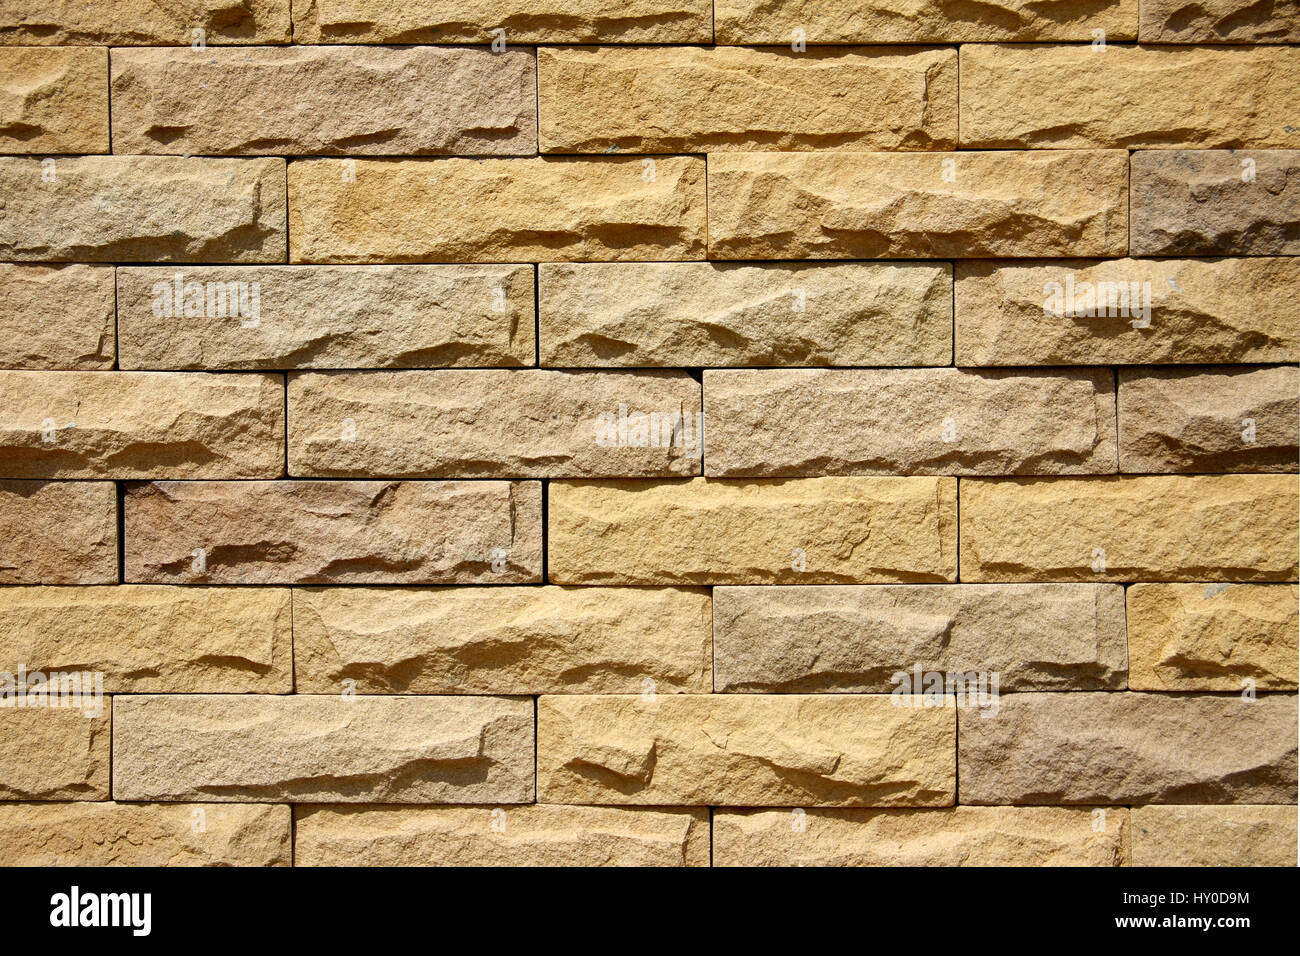 texture of yellow-brown rough brick wall Stock Photo: 137078752 - Alamy